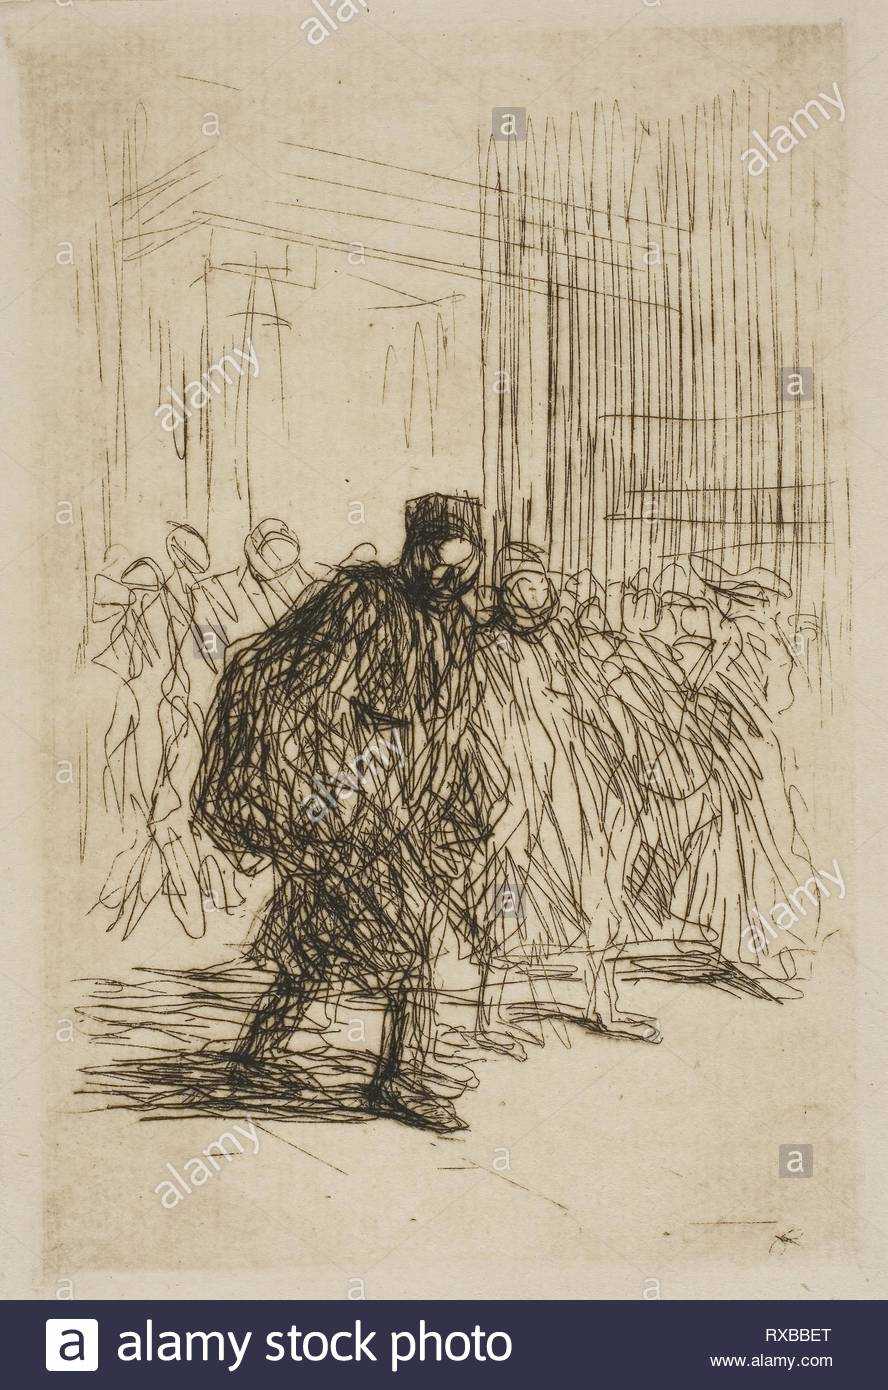 In the Corridors of the Court House. Jean Louis Forain; French, 1852-1931. Date: 1908. Dimensions: 140 × 98 mm (plate); 565 × 455 mm (sheet). Etching in dark brown on cream wove paper. Origin: France. Museum: The Chicago Art Institute. - Stock Image